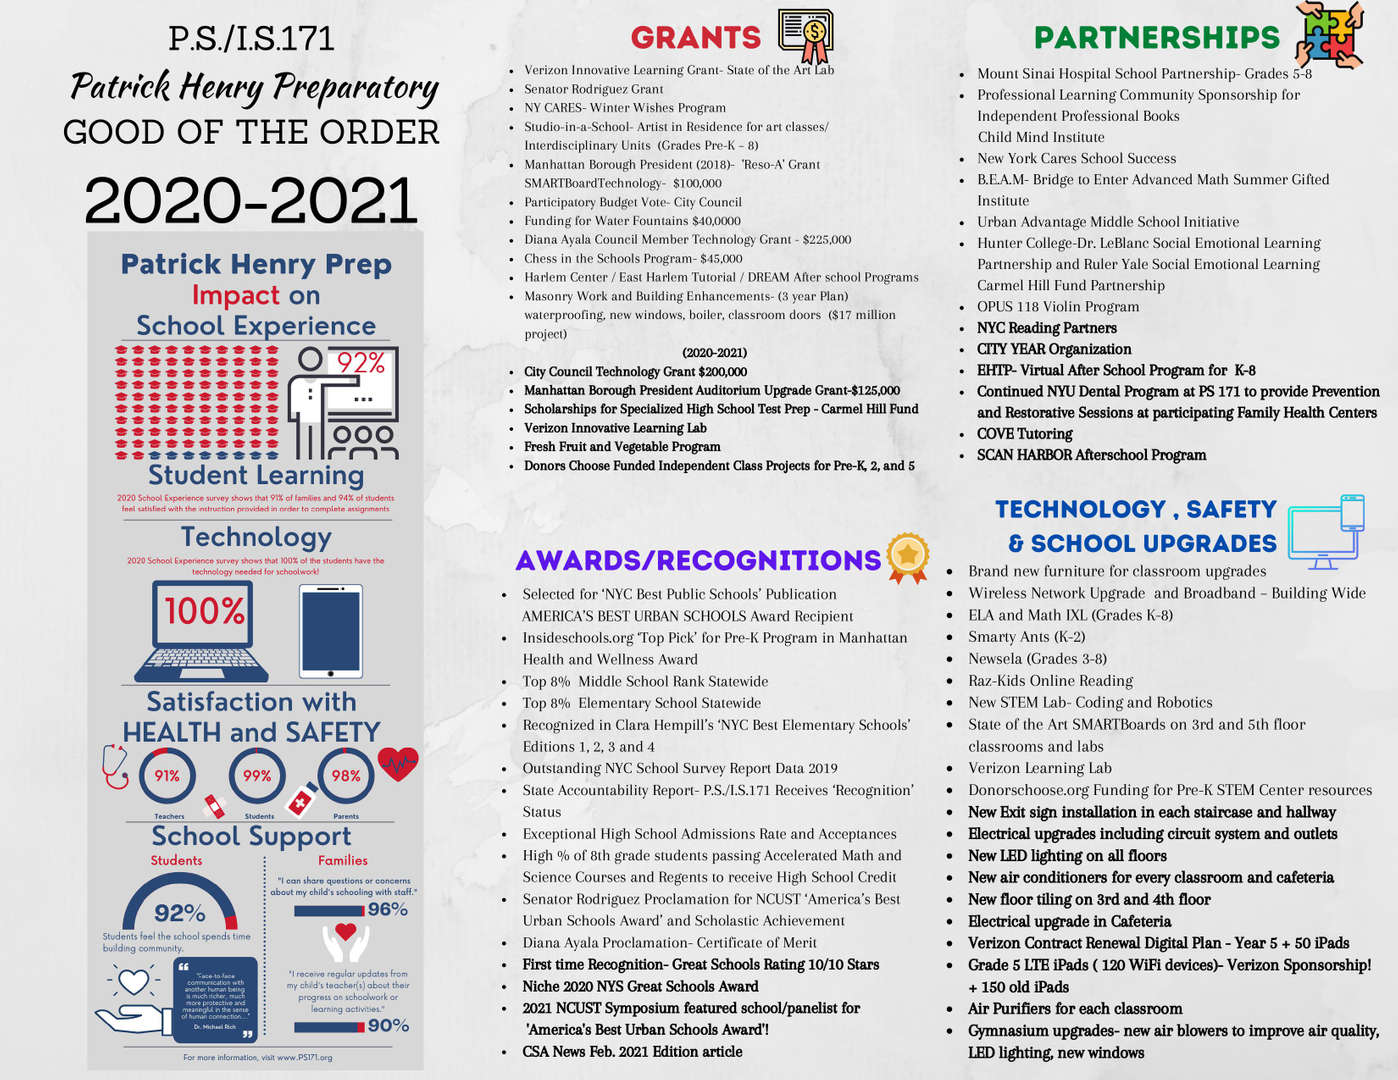 Patrick Henry Prep grants and aware for the year 2021